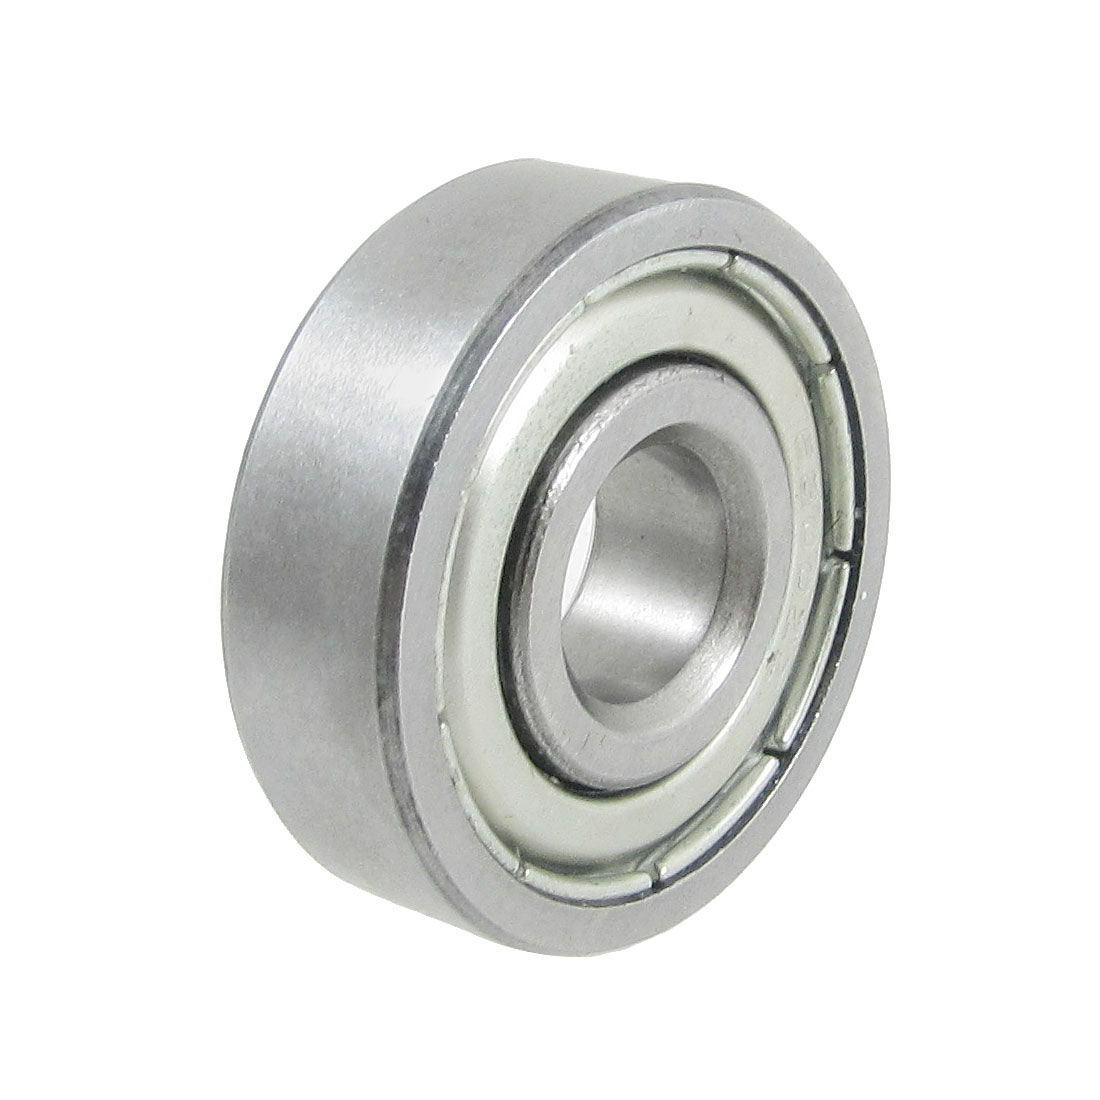 30mm x 10mm x 9mm Roller-Skating Wheel Groove Ball Bearing 6200Z